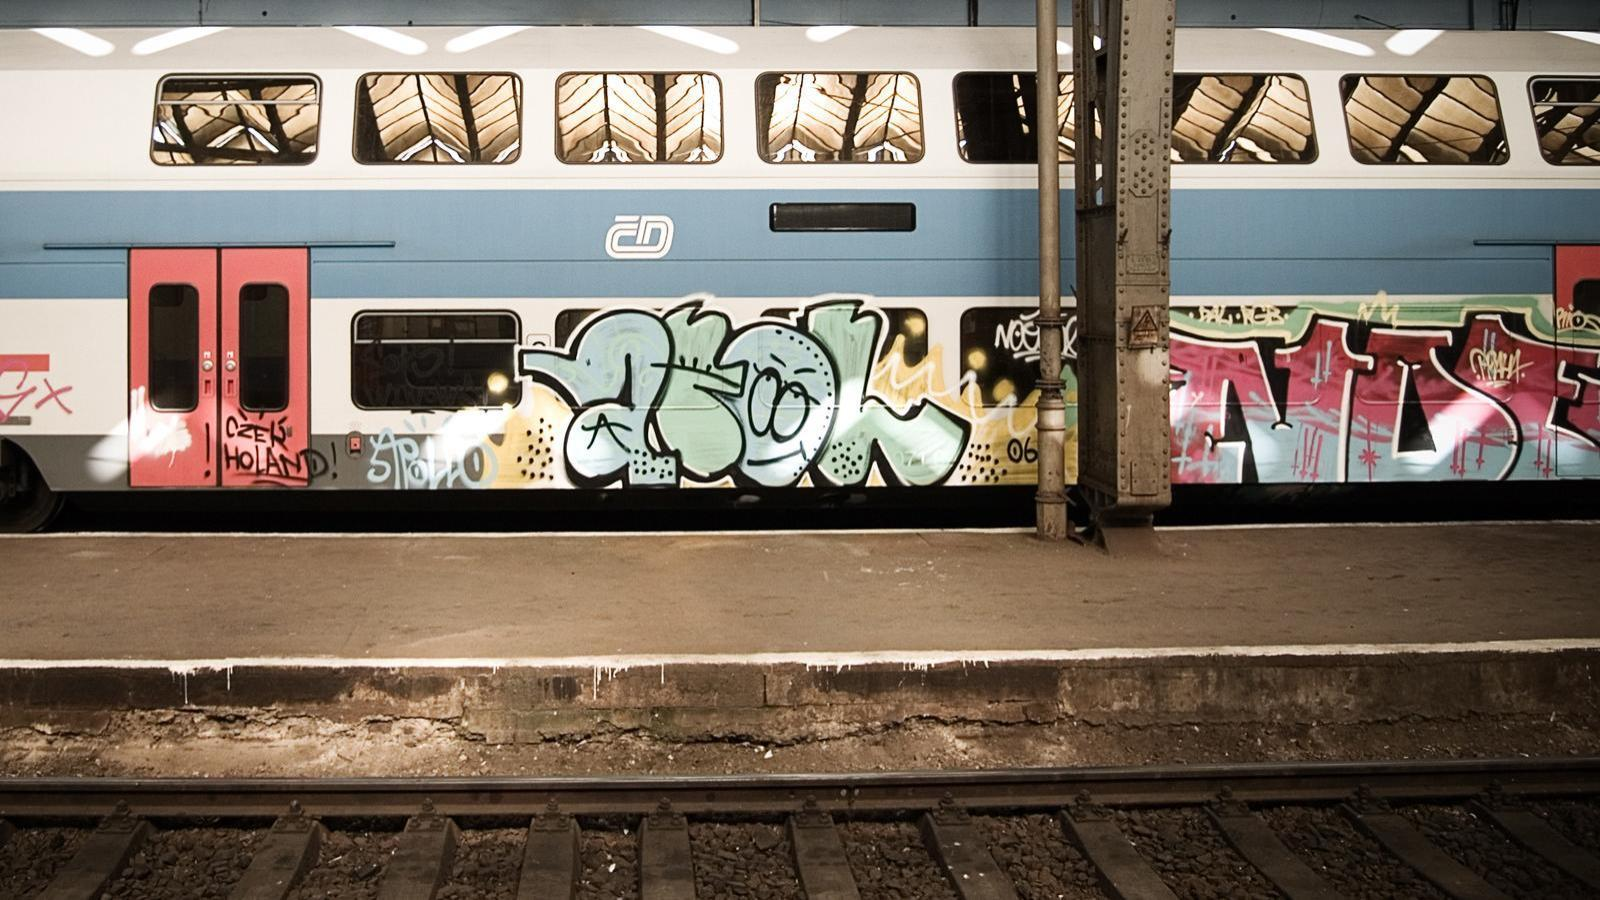 trains graffiti street art HD Wallpaper